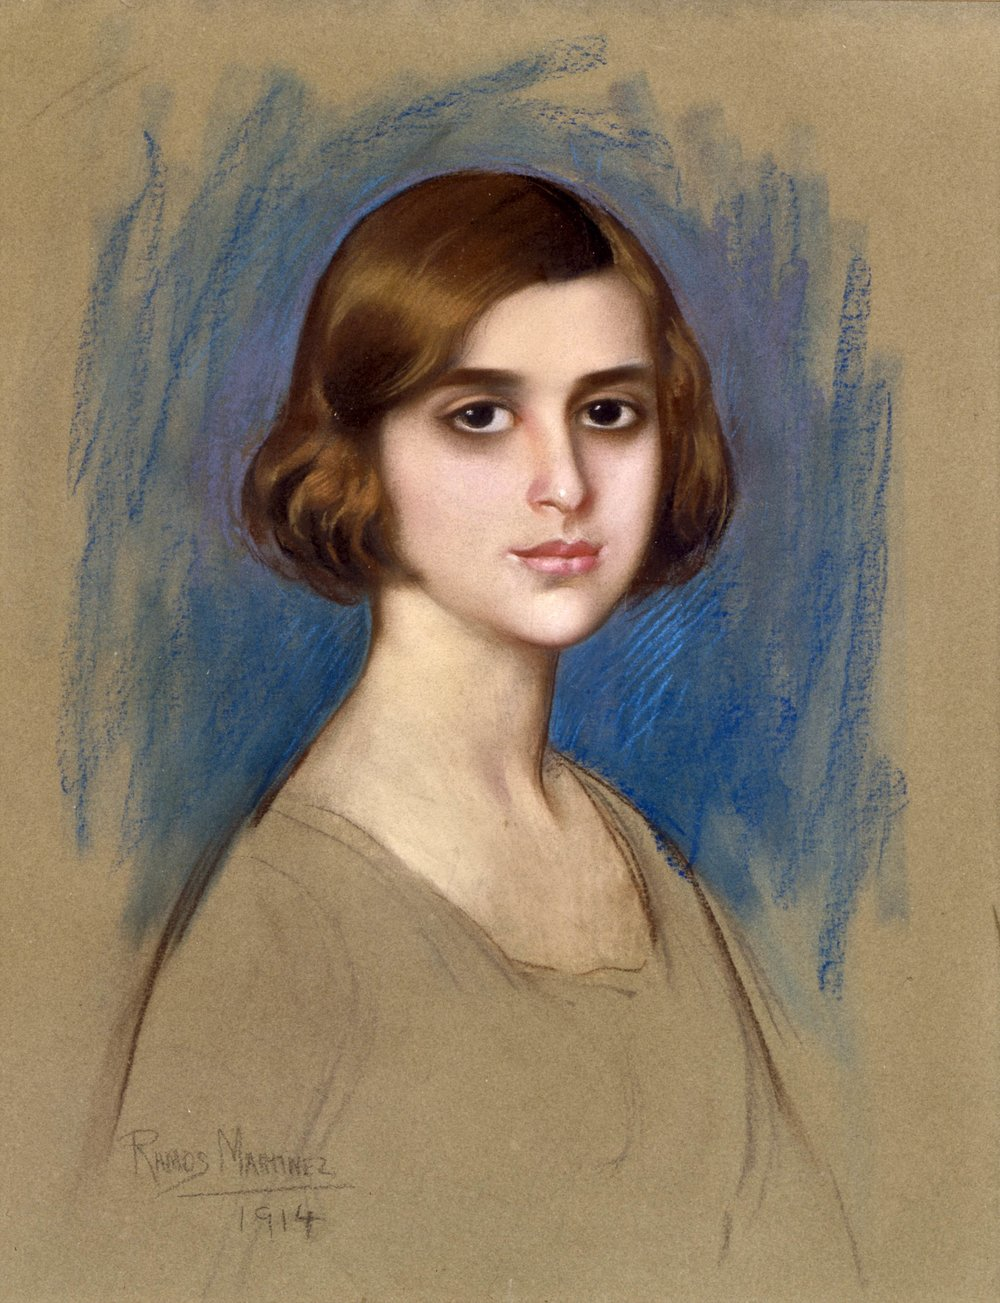 Retrato de una Dama (Portrait of a Lady)  1914 pastel on cardboard / pintura al pastel sobre papel cartón 25.2 x 19.3 inches / 64 x 48.9 centímetros Private collection